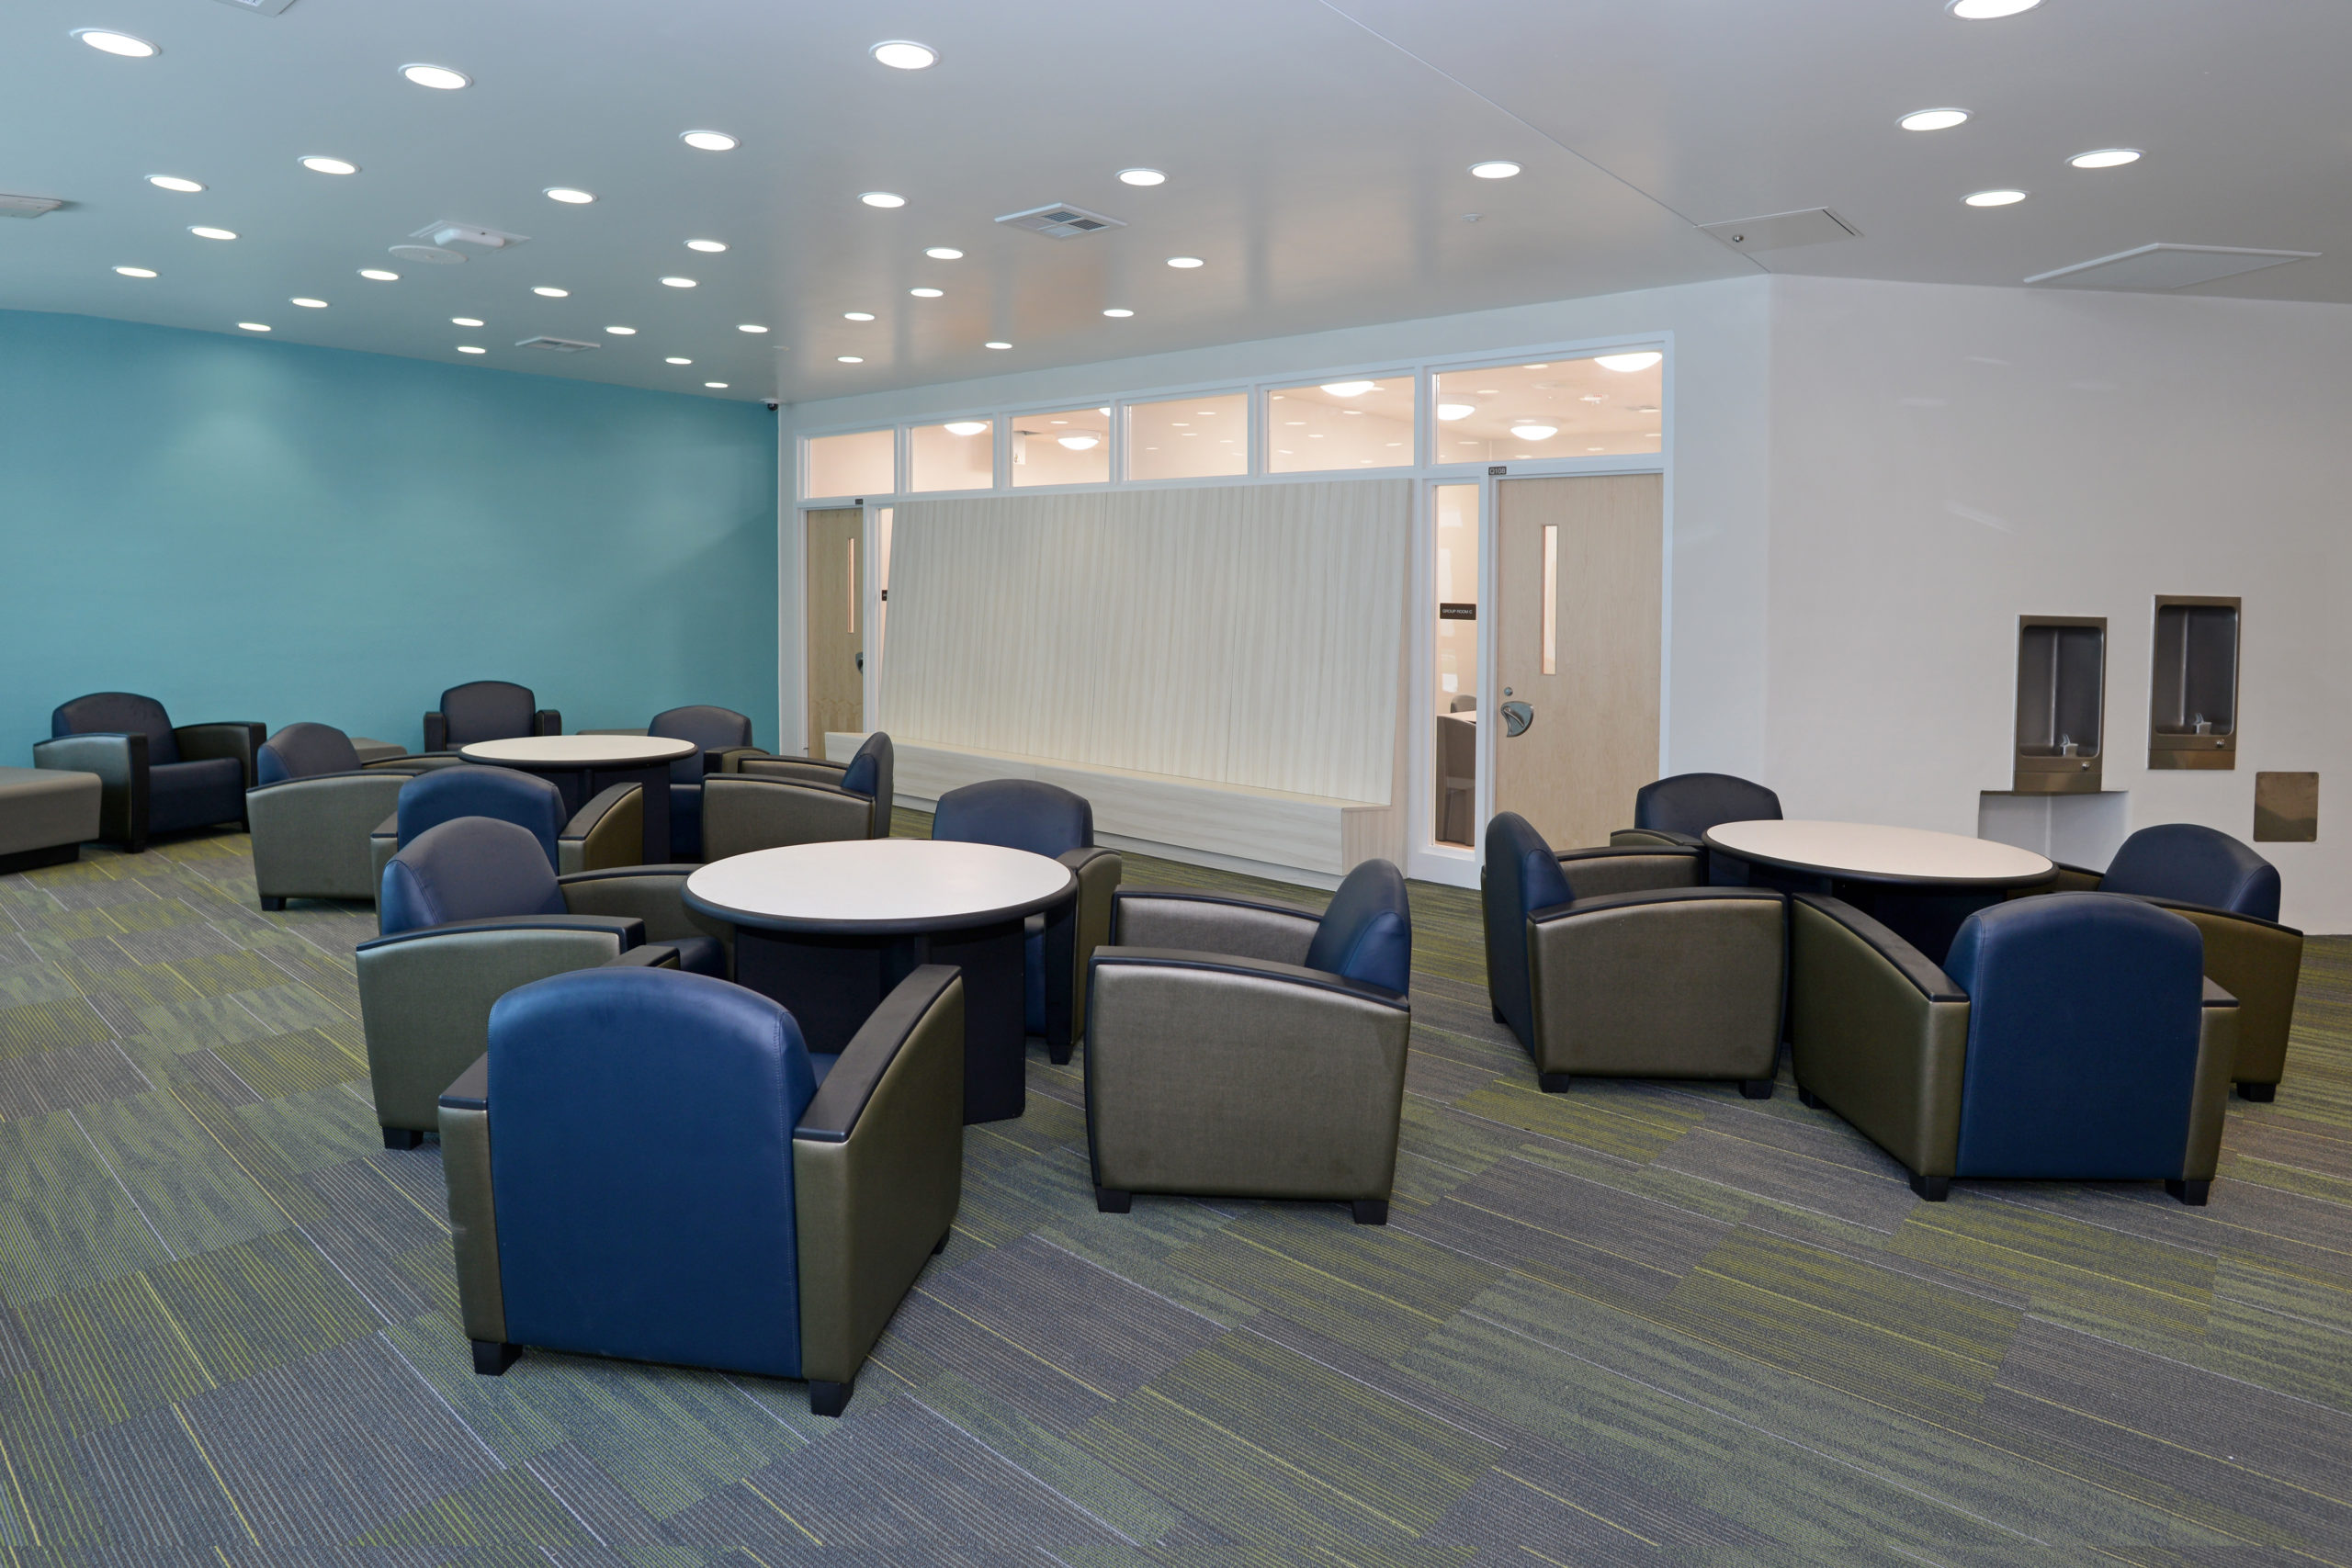 Modern visitation area furniture in a behavioral healthcare facility